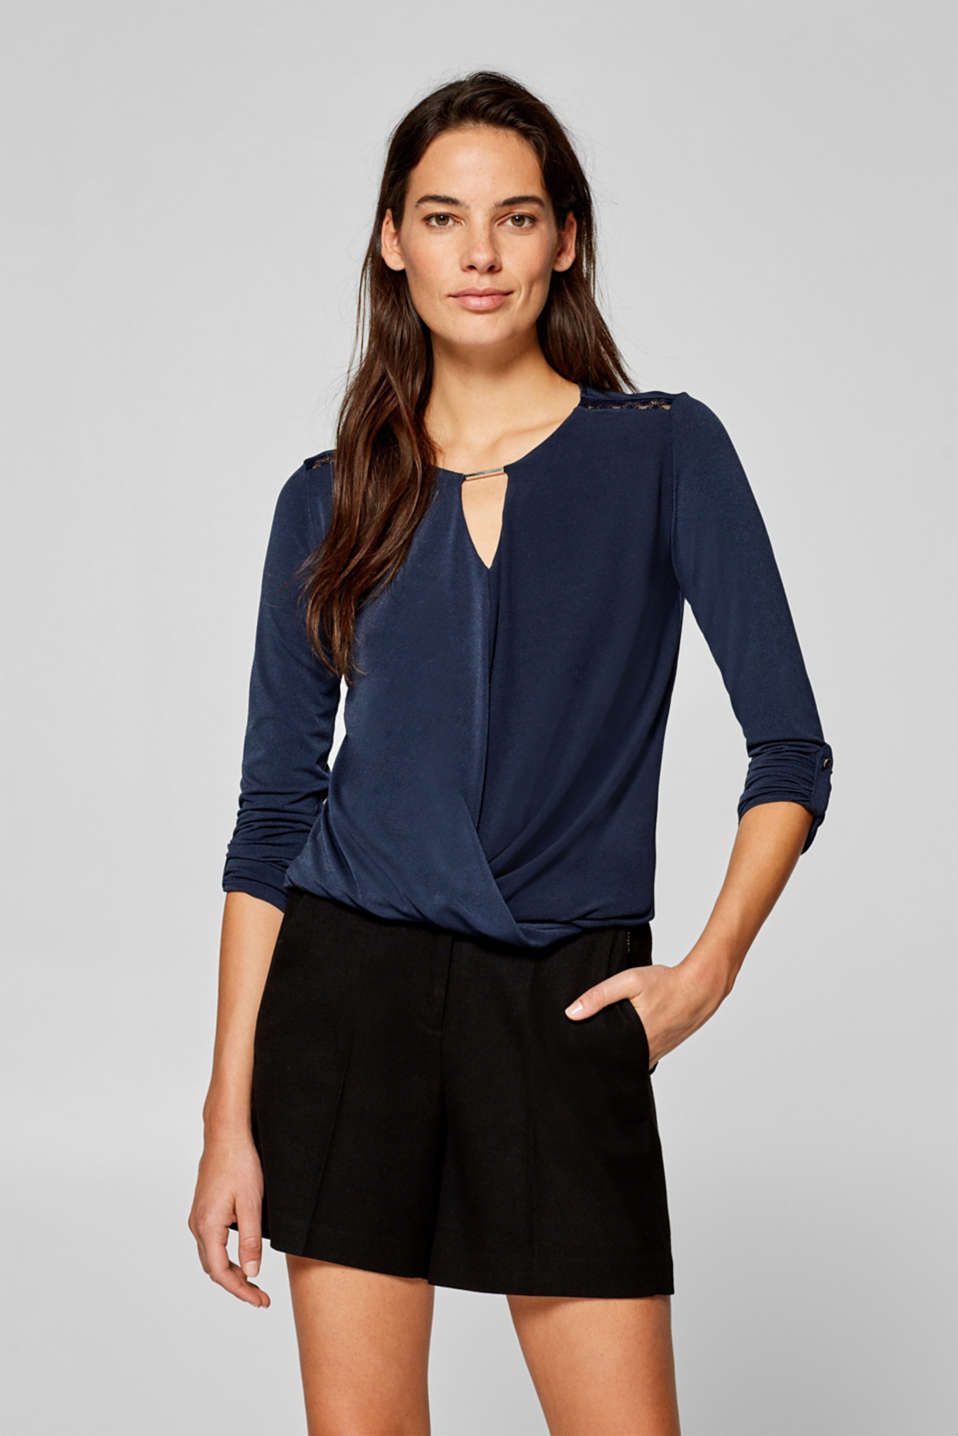 Esprit - Stretchy long sleeve top with decorative details